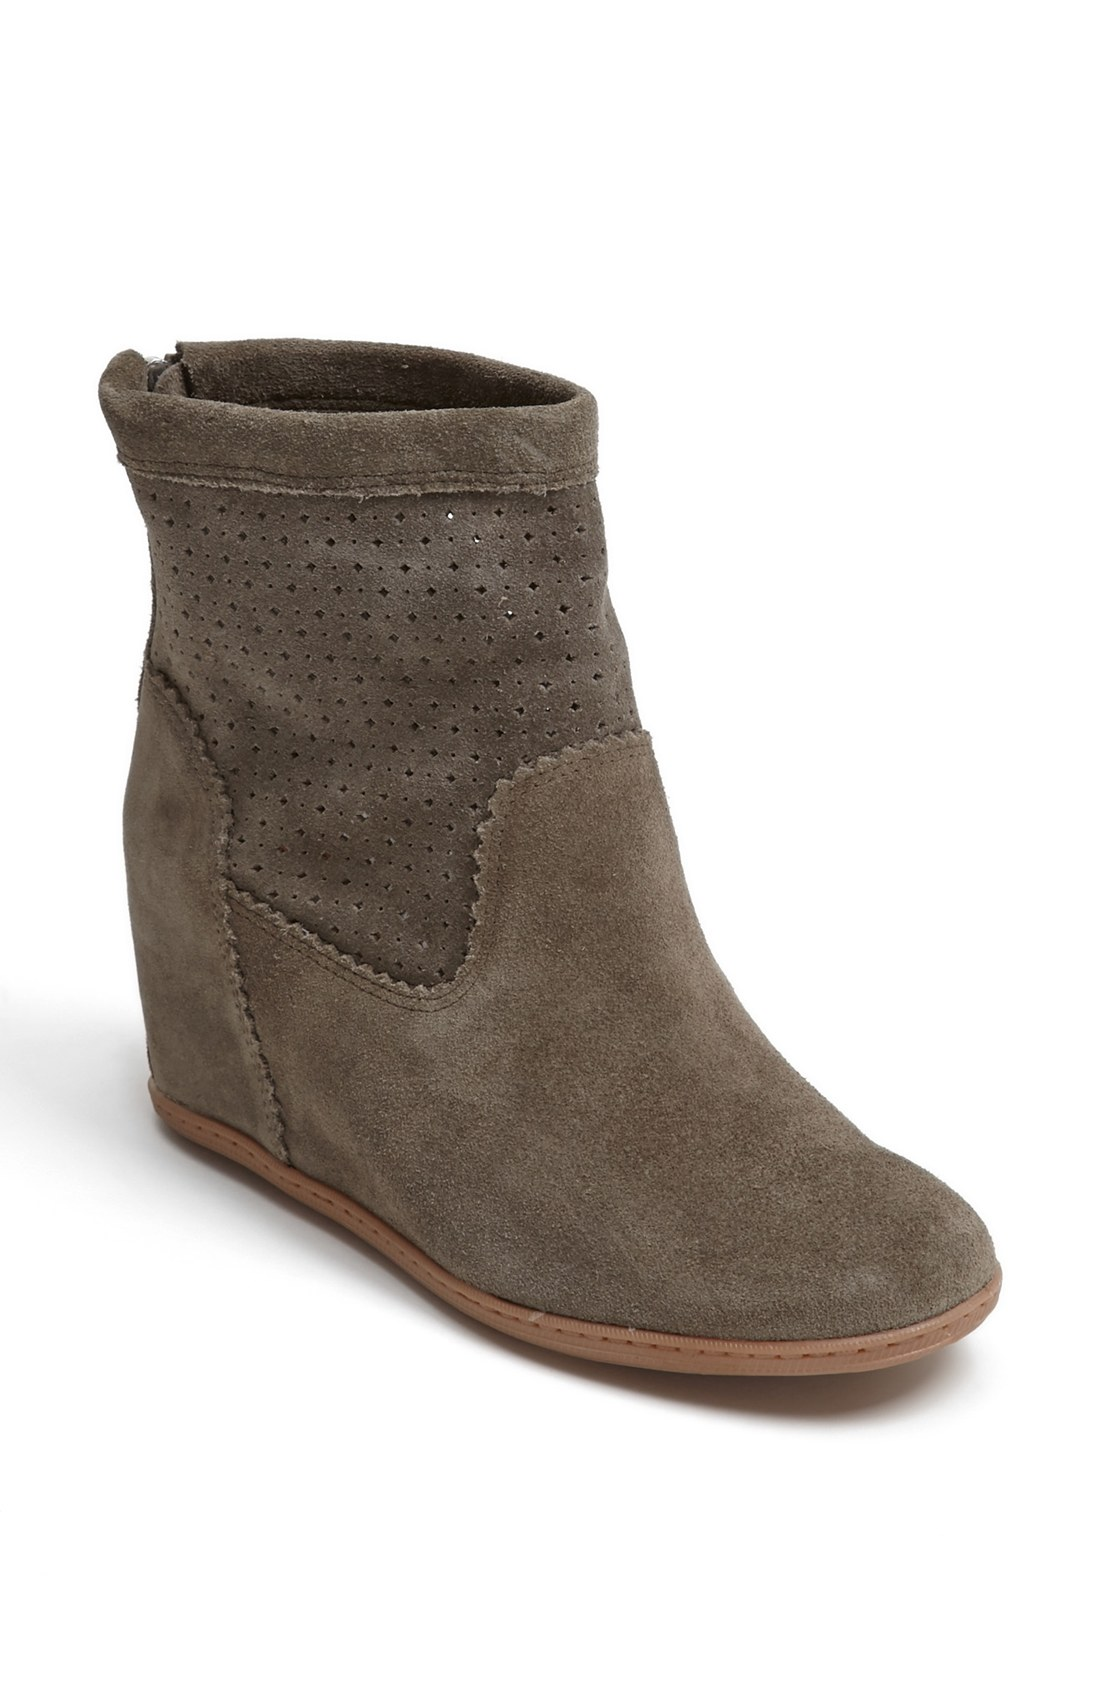 Wedge Booties. Be a trendsetter in wedge booties. Reach new heights in tall heels or keep wardrobes casual with lower ones. Slip into booties from Aerosoles, BCBGeneration, Lucky Brand, MICHAEL Michael Kors and more.